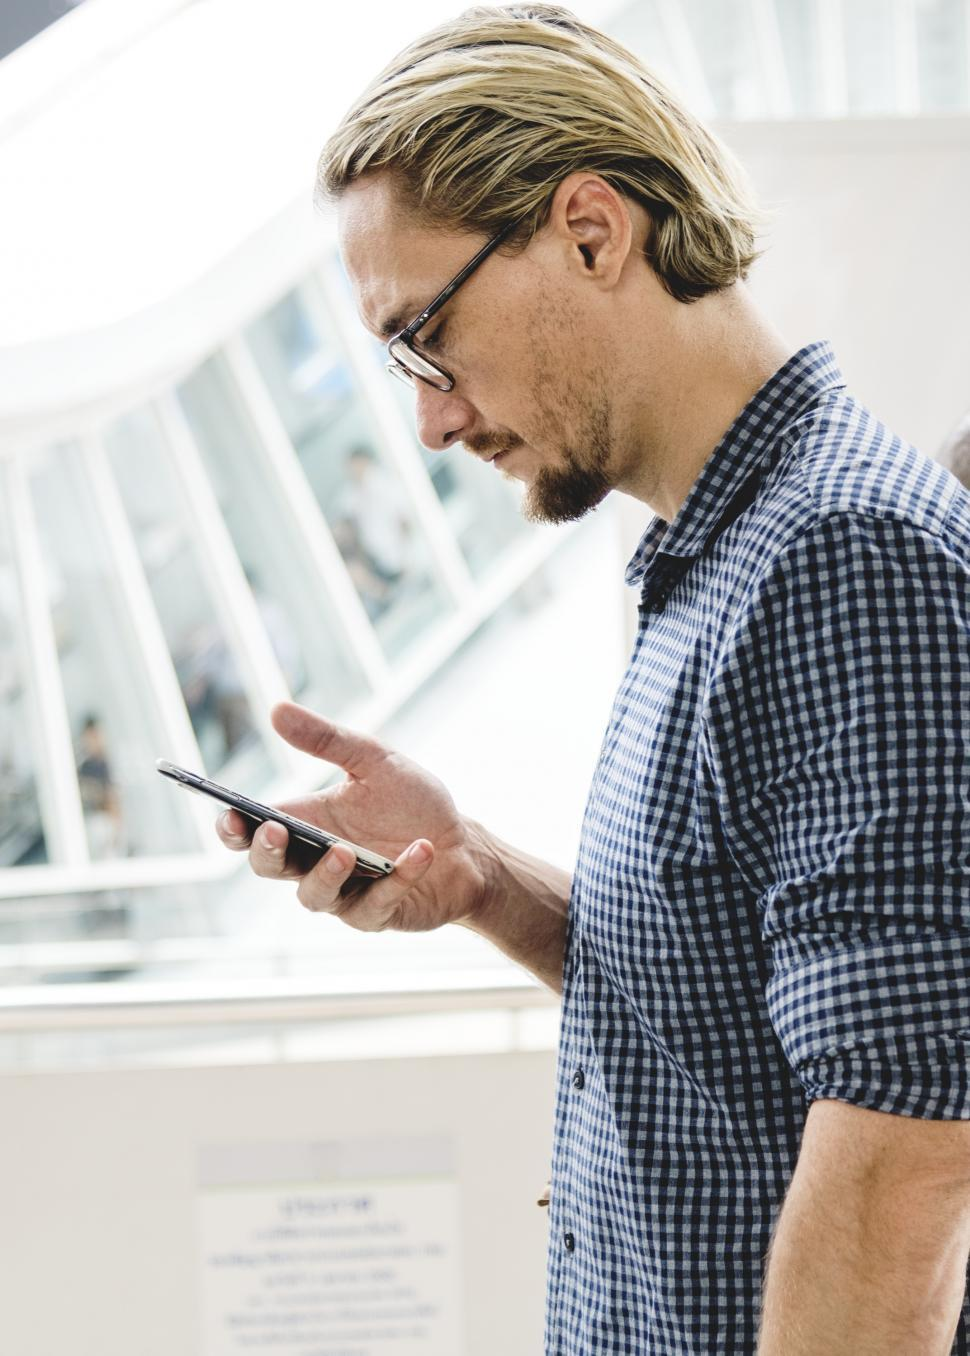 Download Free Stock HD Photo of A bearded Caucasian man looking at his mobile phone Online